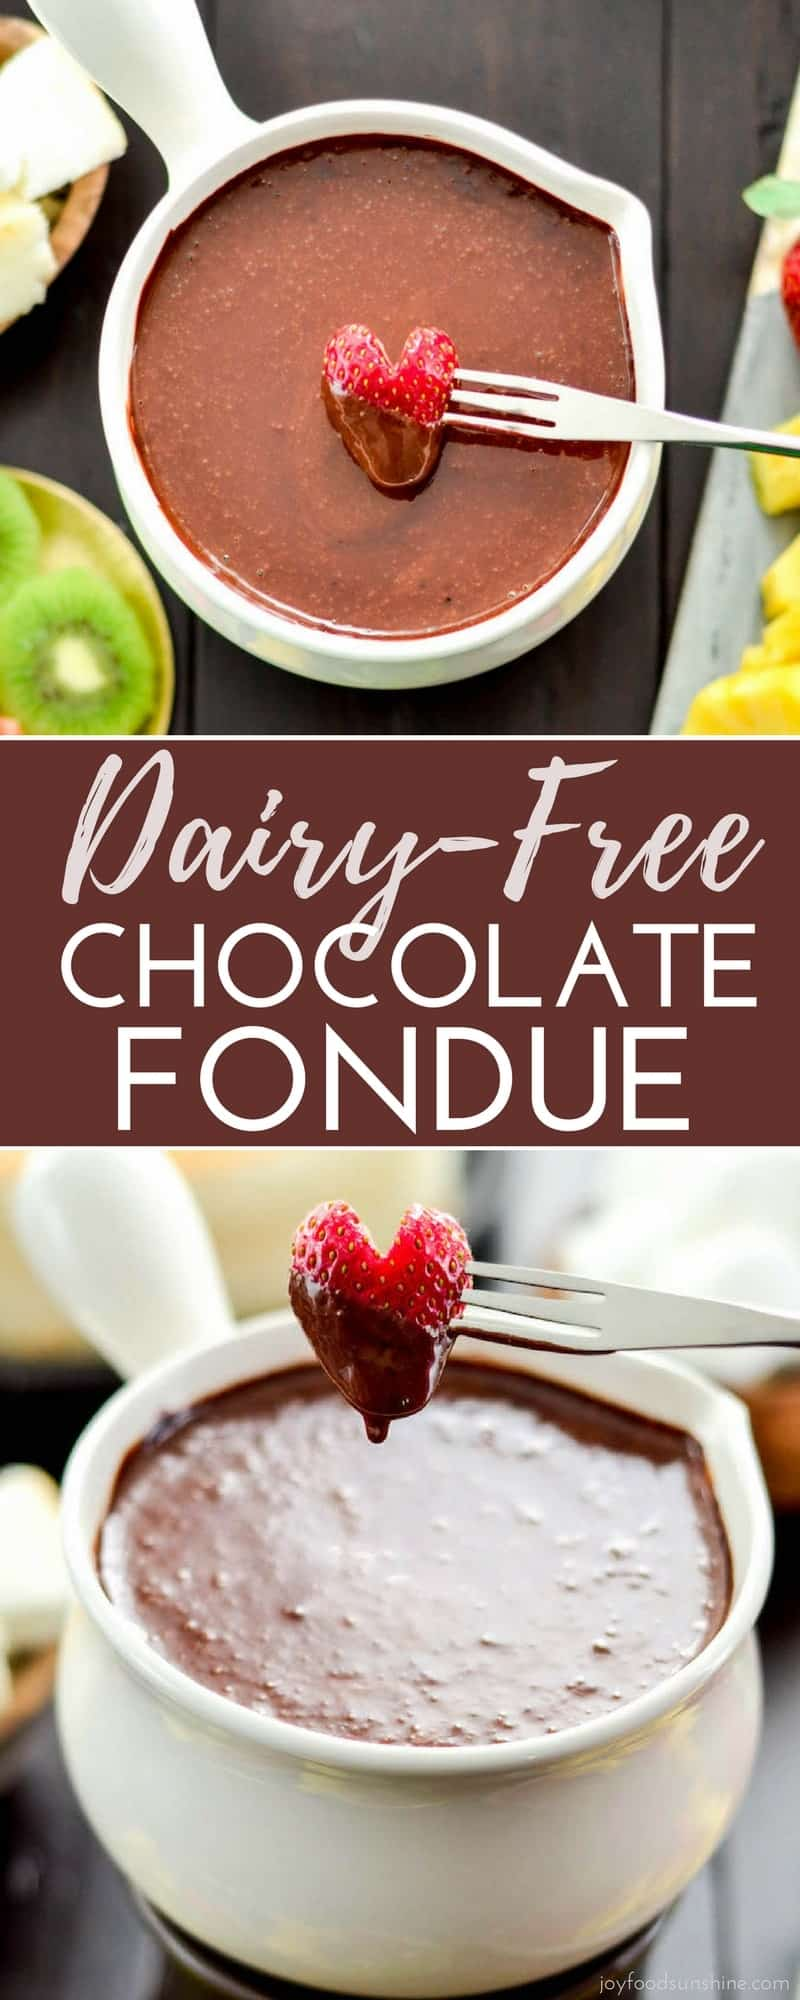 This Dairy-free Vegan Chocolate Fondue Recipe is made in 5 minutes with 6 ingredients! It's the perfect fancy dessert to feed a crowd #vegan #fondue #chocolate #dairyfree #dessert #vitamix #paleo #refinedsugarfree